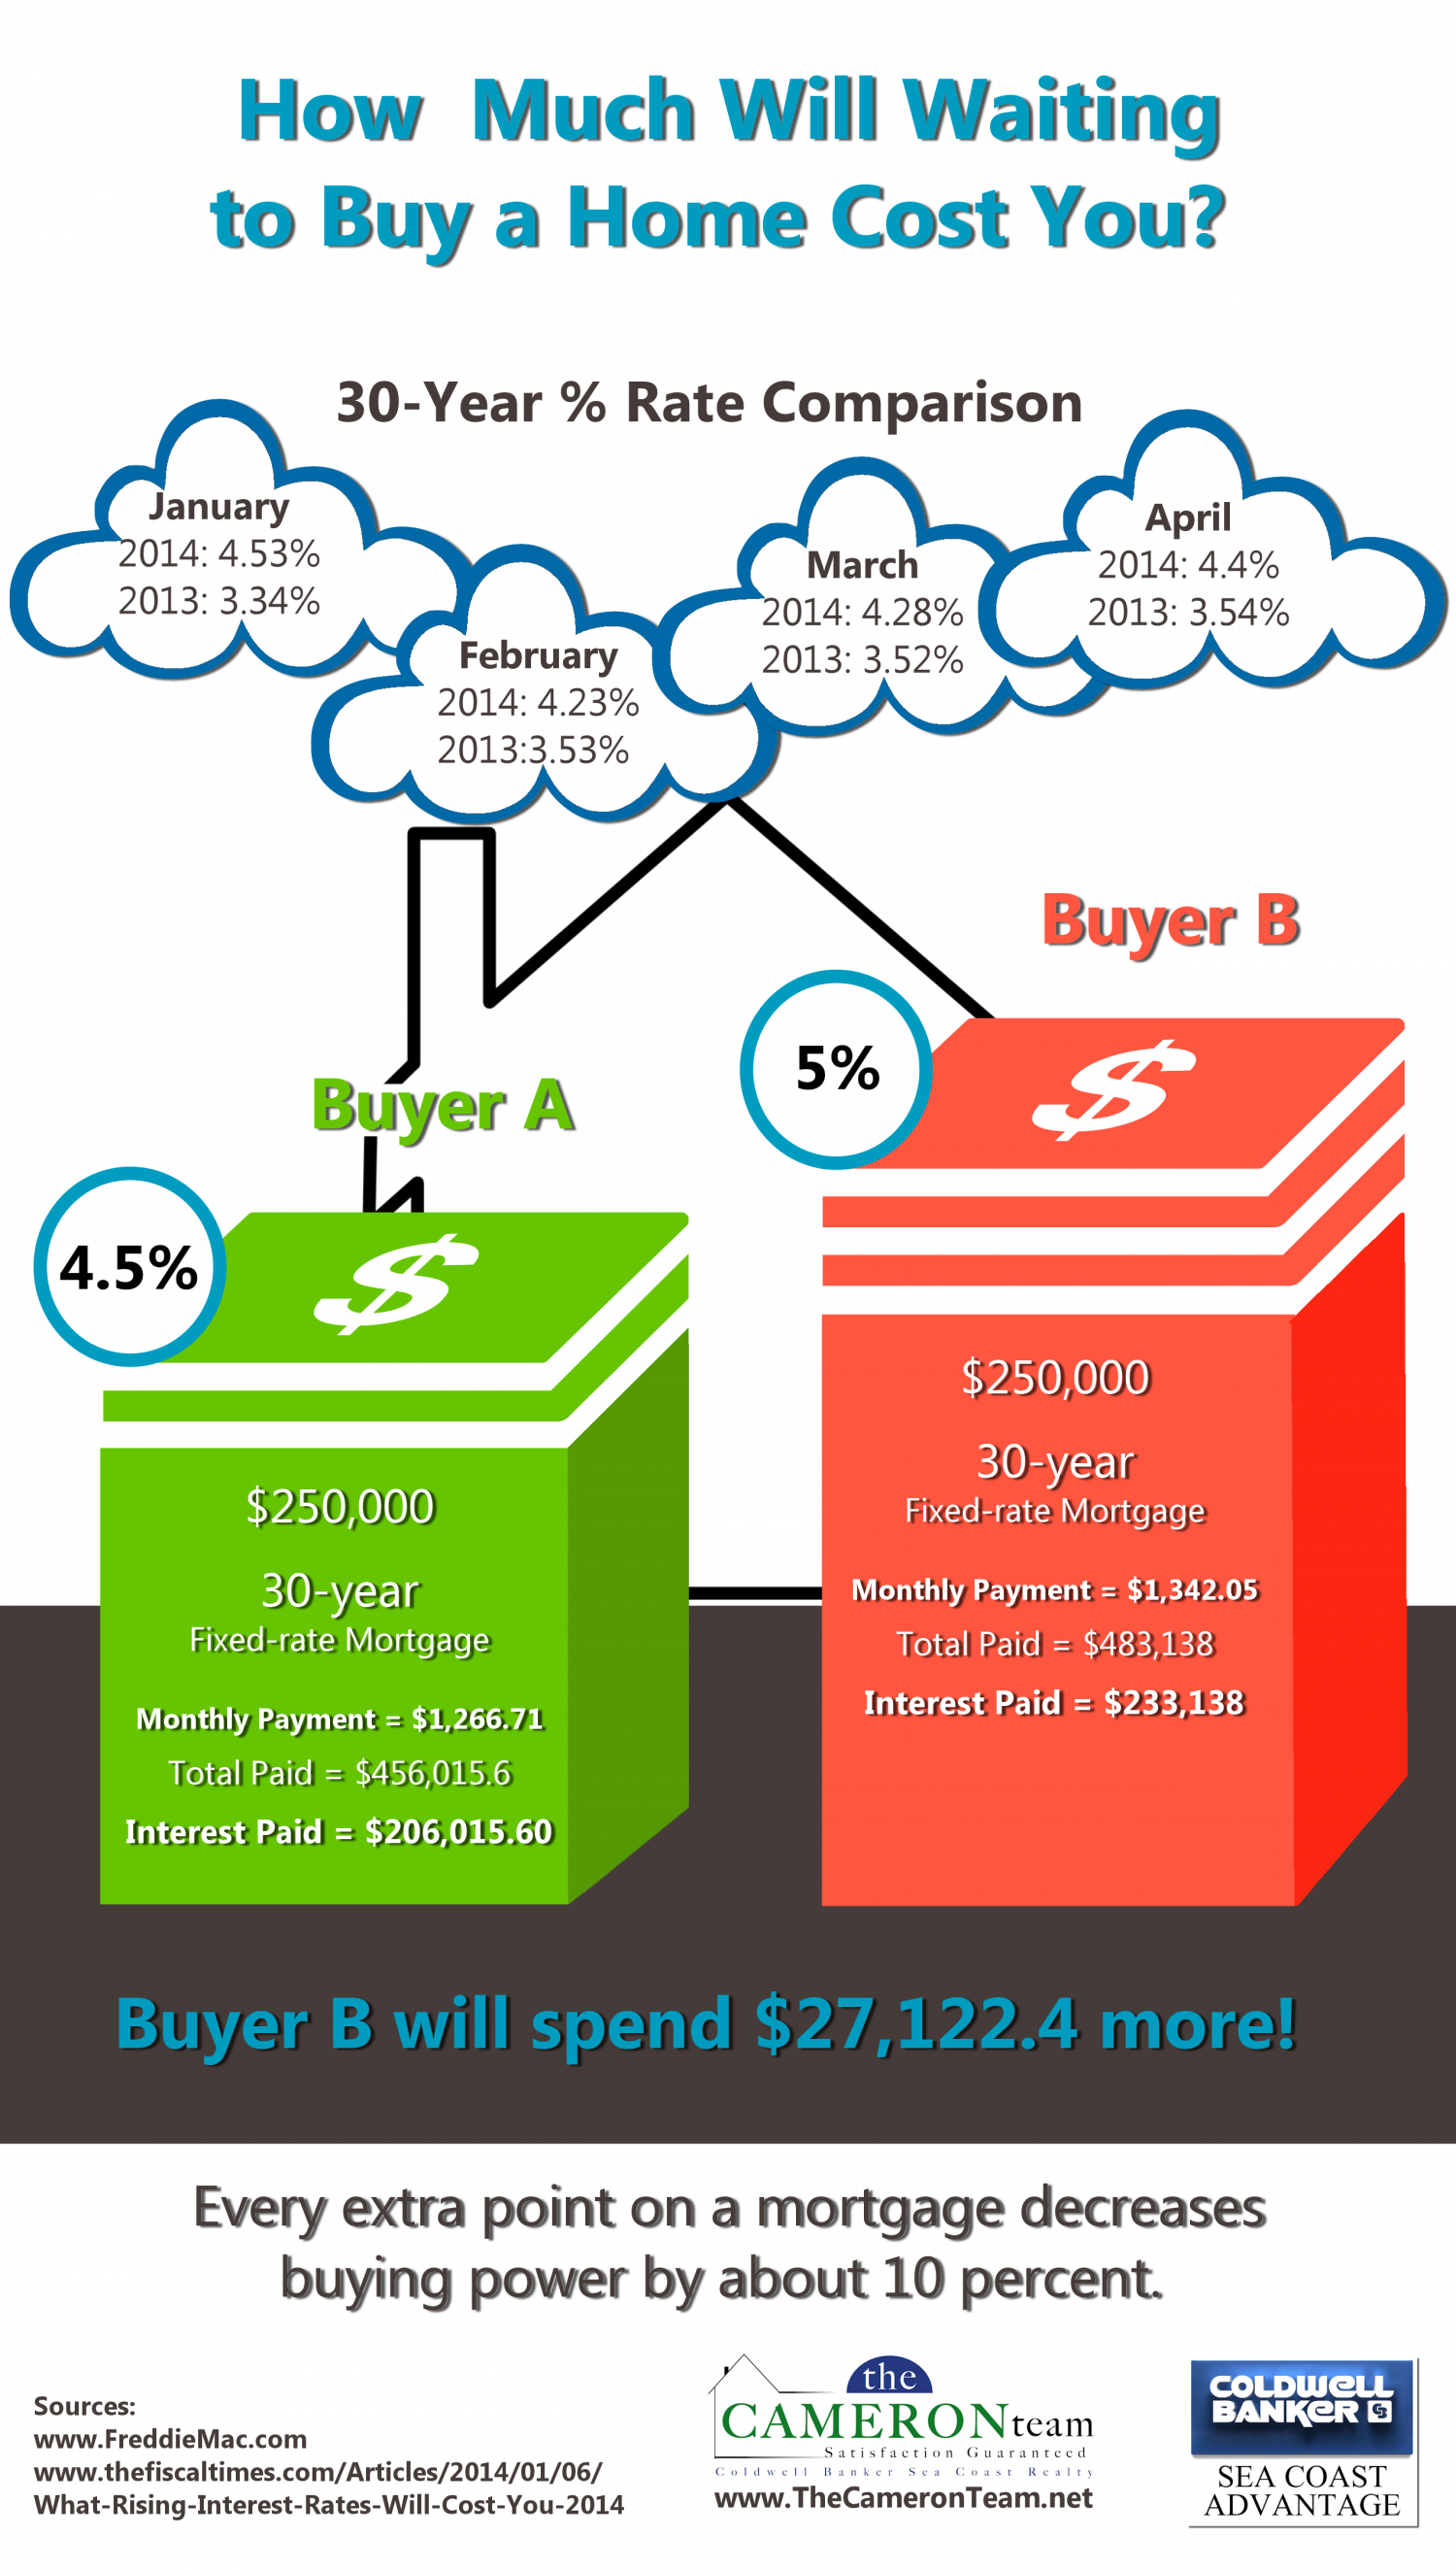 How Much Will Waiting to Buy a Home Cost You? Infographic